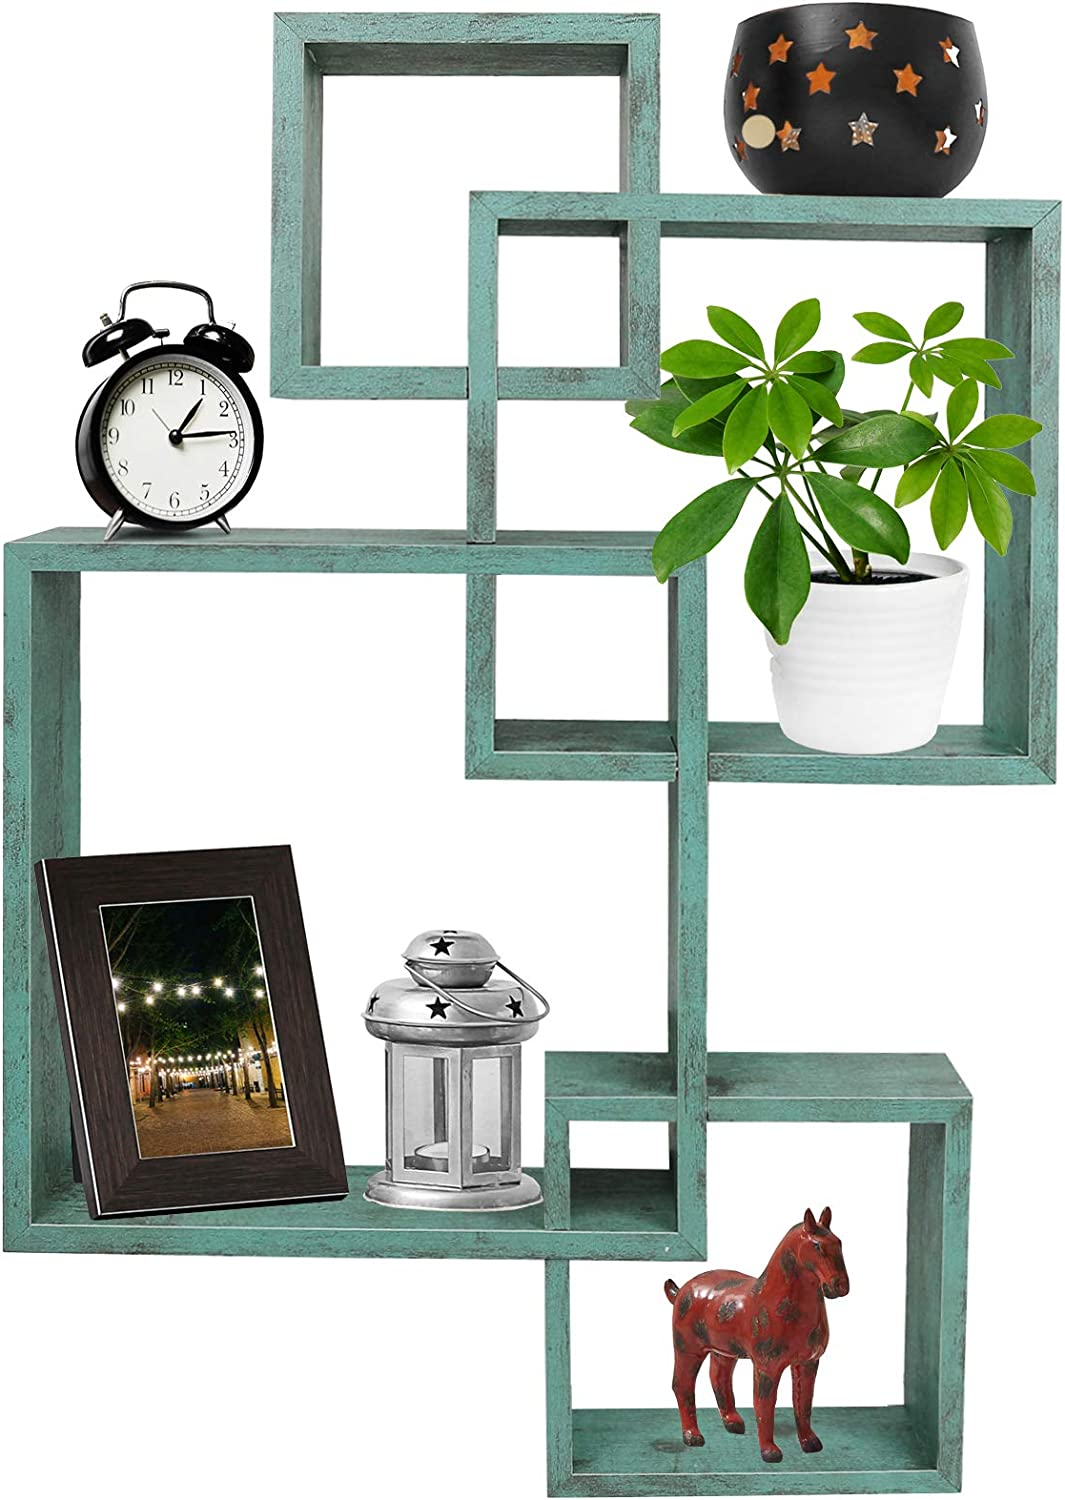 Greenco 4 Cube Intersecting Wall Mounted Floating Shelves Rustic Turquoise Finish.